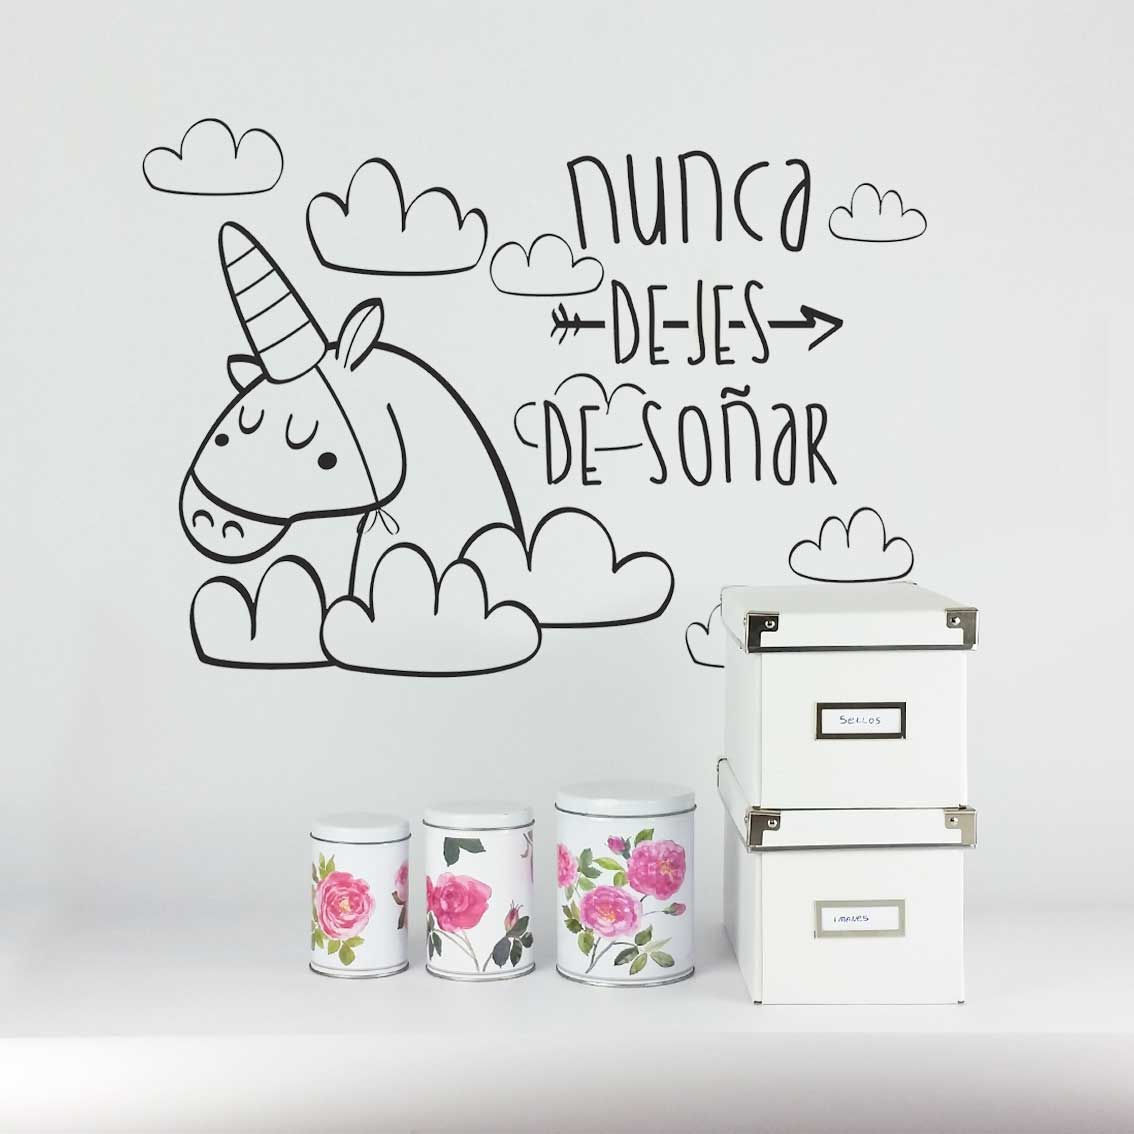 Decorar Pared Habitacion Infantil Vinilo Decoración Pared Pegatina Habitación Infantil